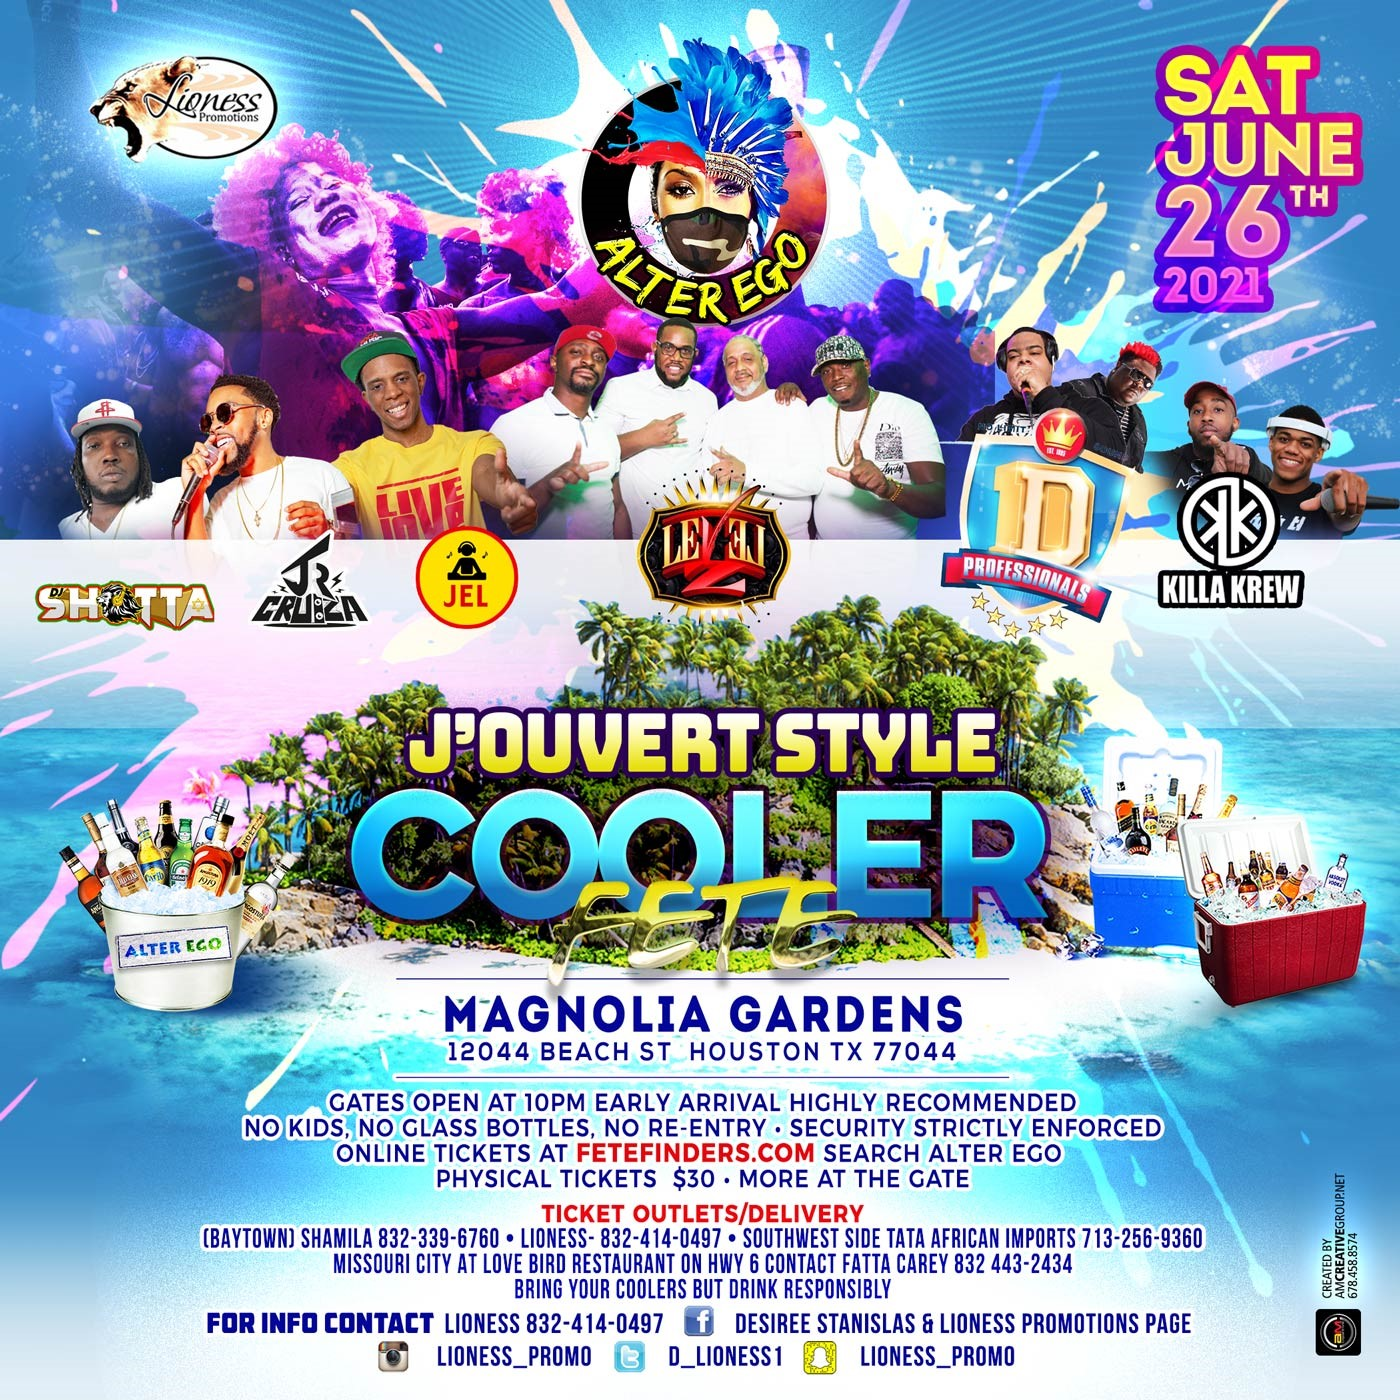 ALTER EGO J'ouvert Style Cooler Fete on jun. 26, 21:00@Magnolia Gardens - Buy tickets and Get information on www.fetefinders.com tickets.fetefinders.com